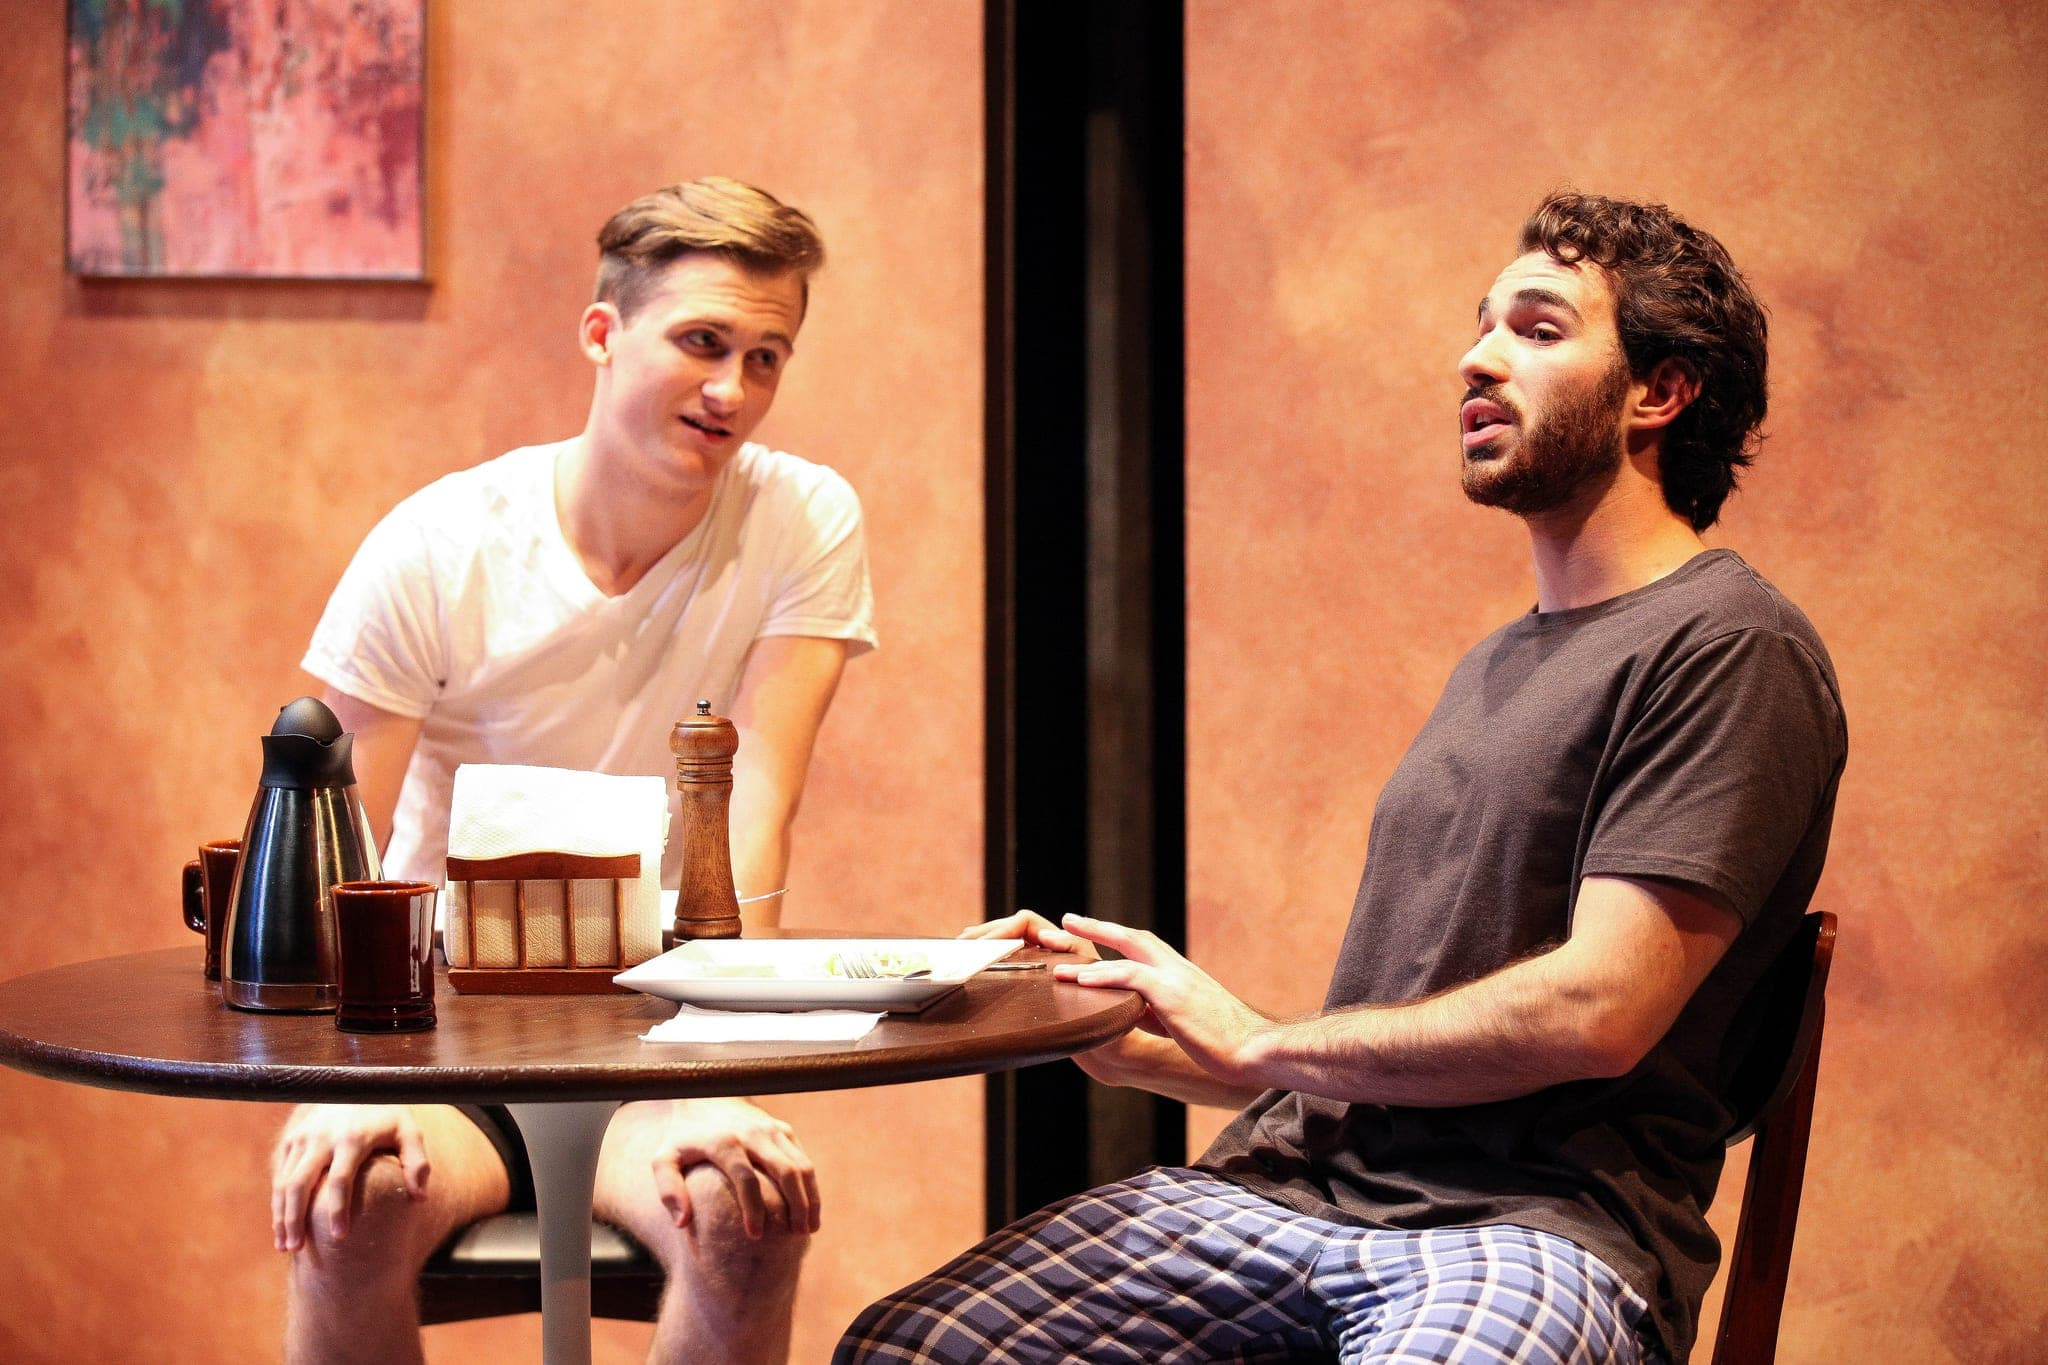 Justin Slepicoff and Nick Turturro in the Syracuse University Department of Drama production of